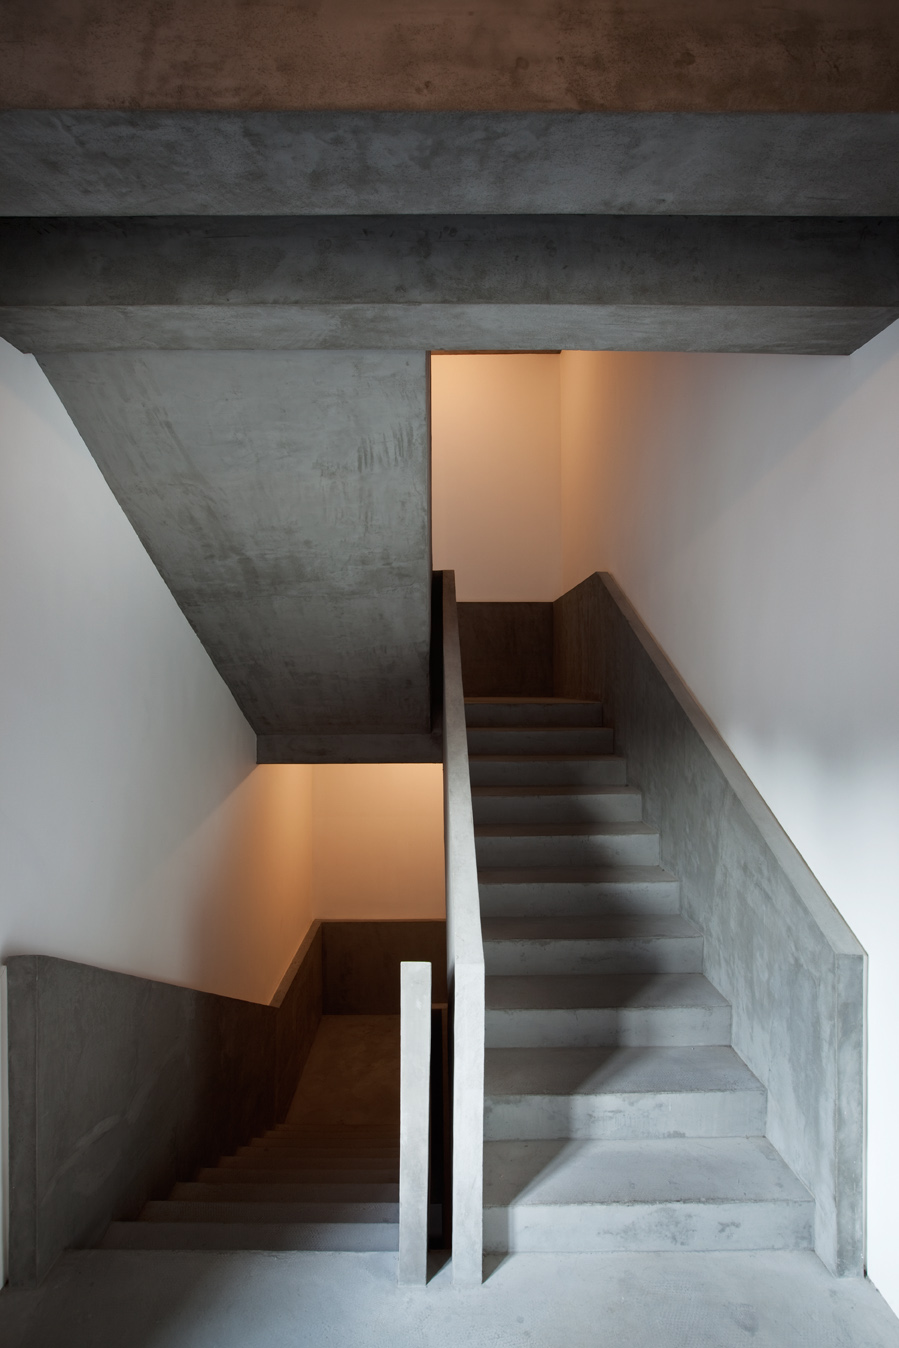 The Black Box / Neri & Hu Design and Research Office